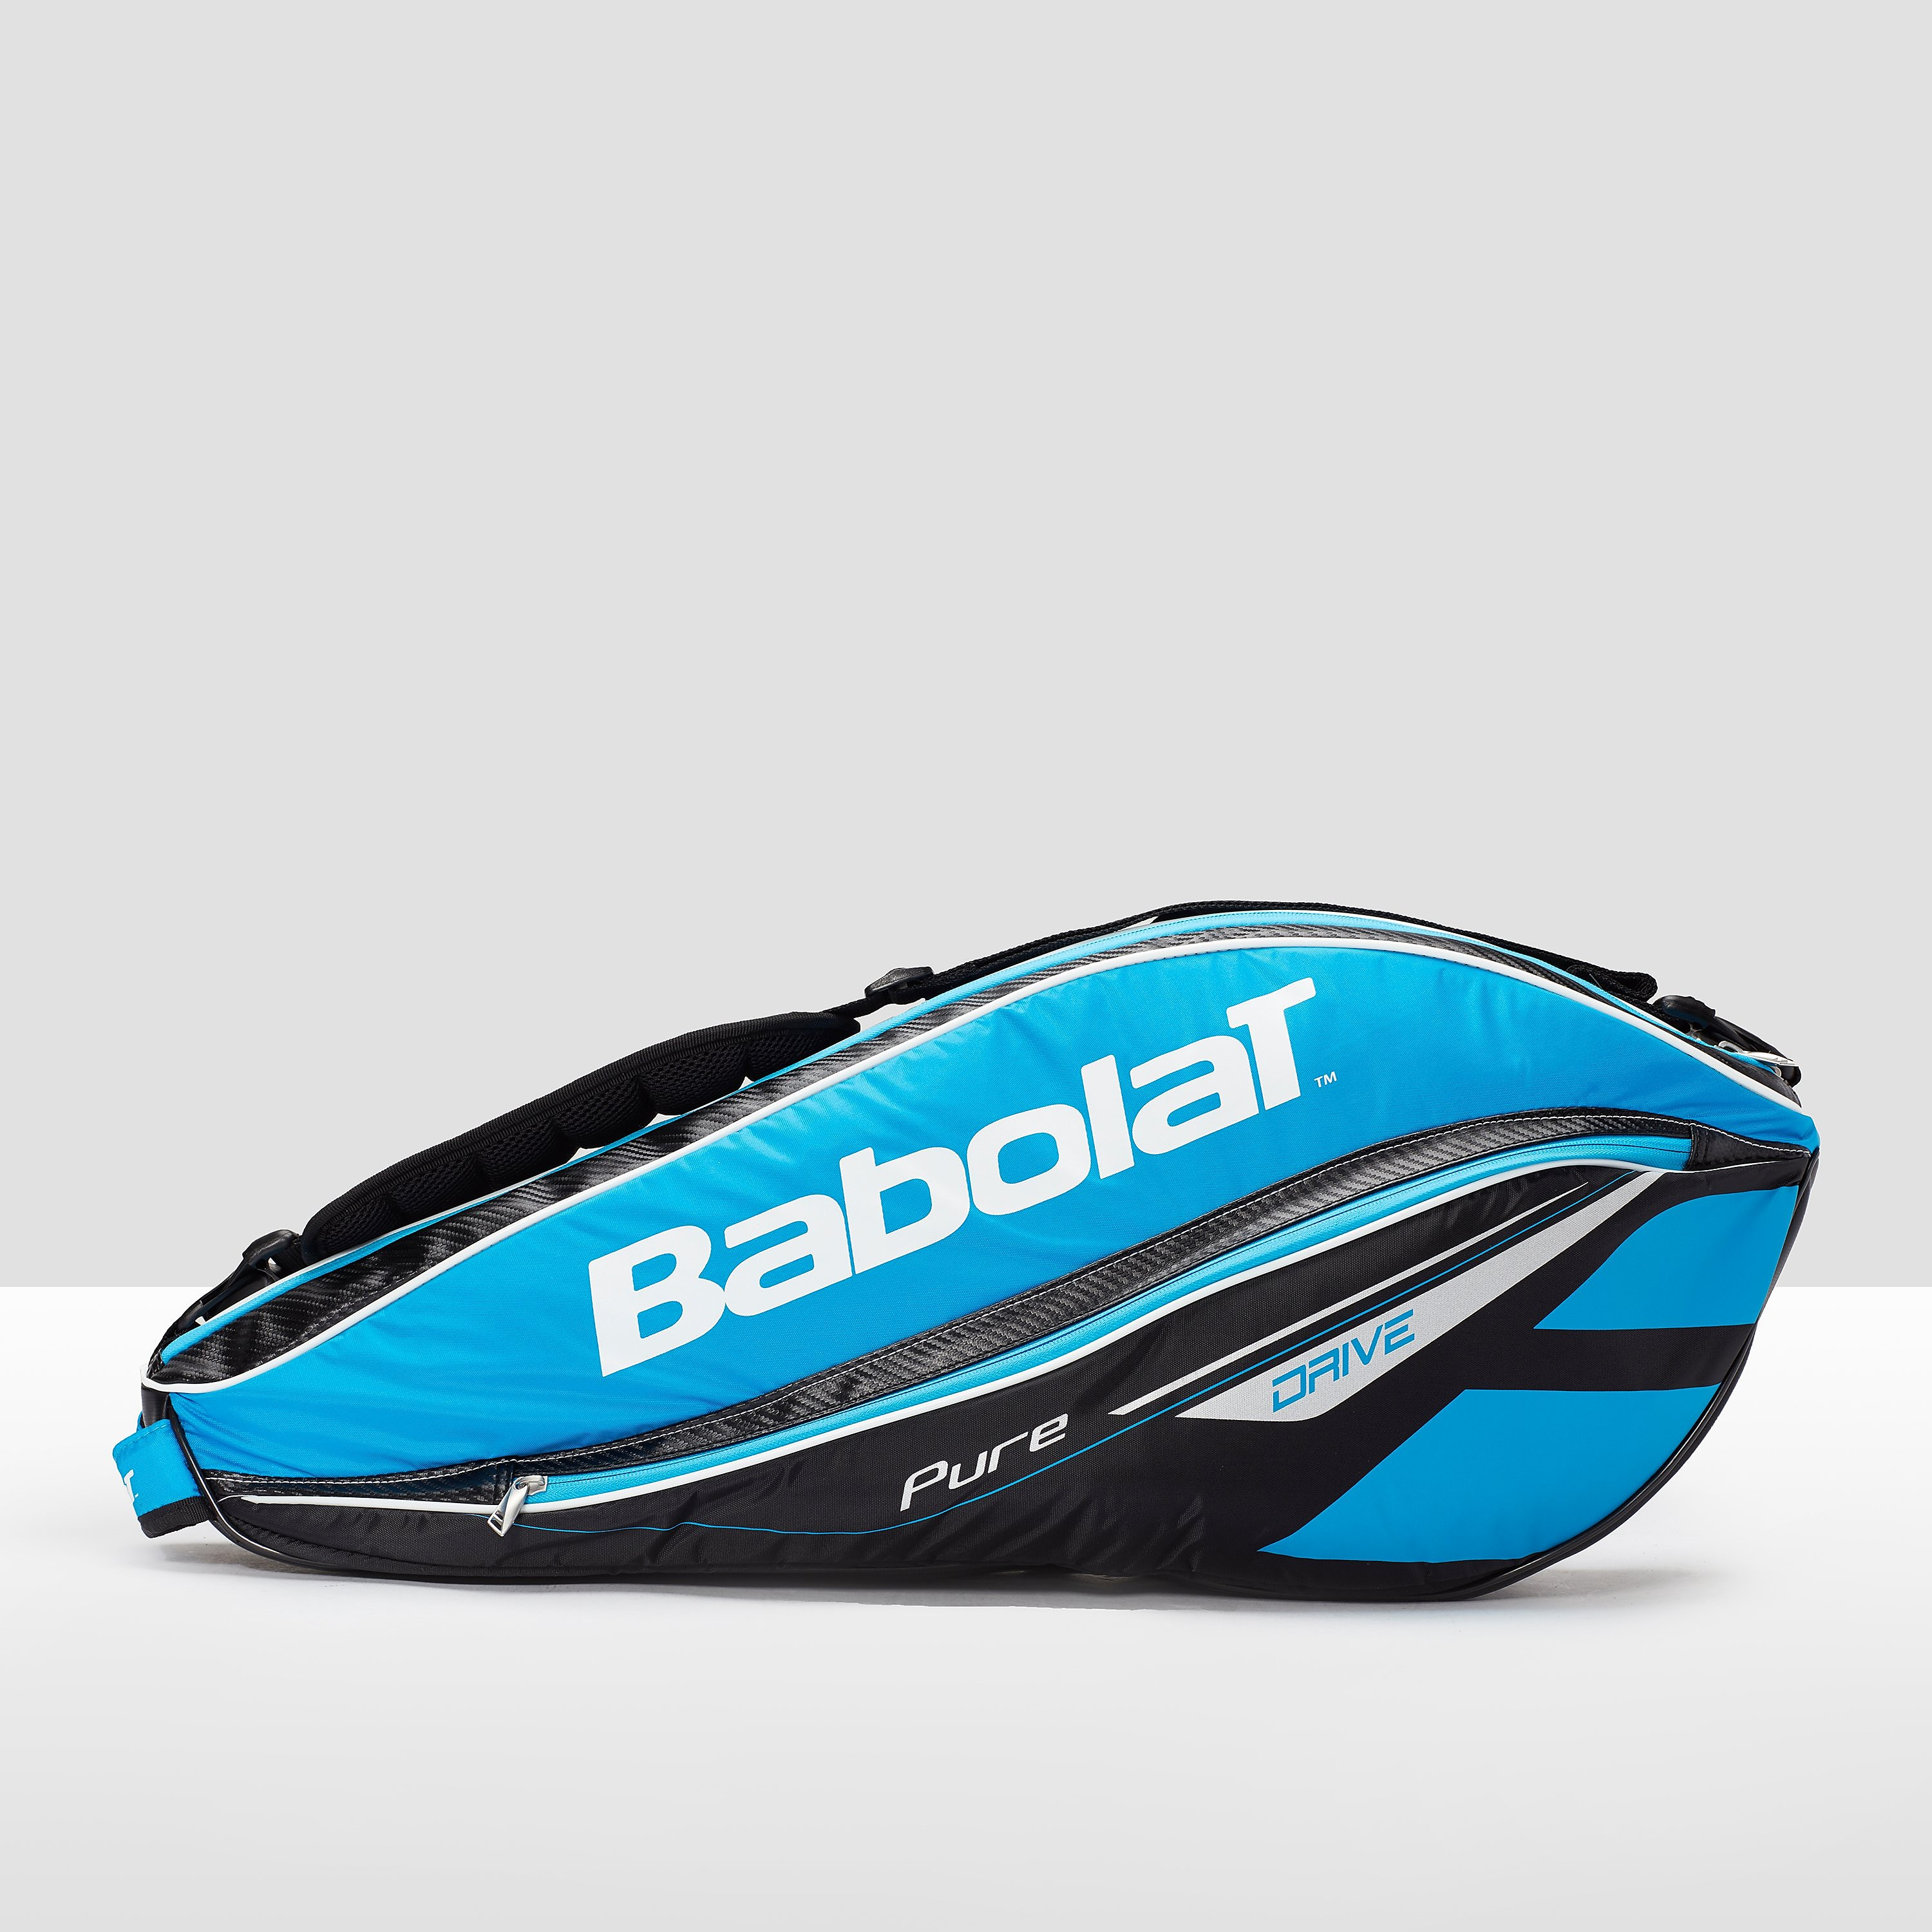 BABOLAT RH X3 Pure Drive Tennis Racket Bag